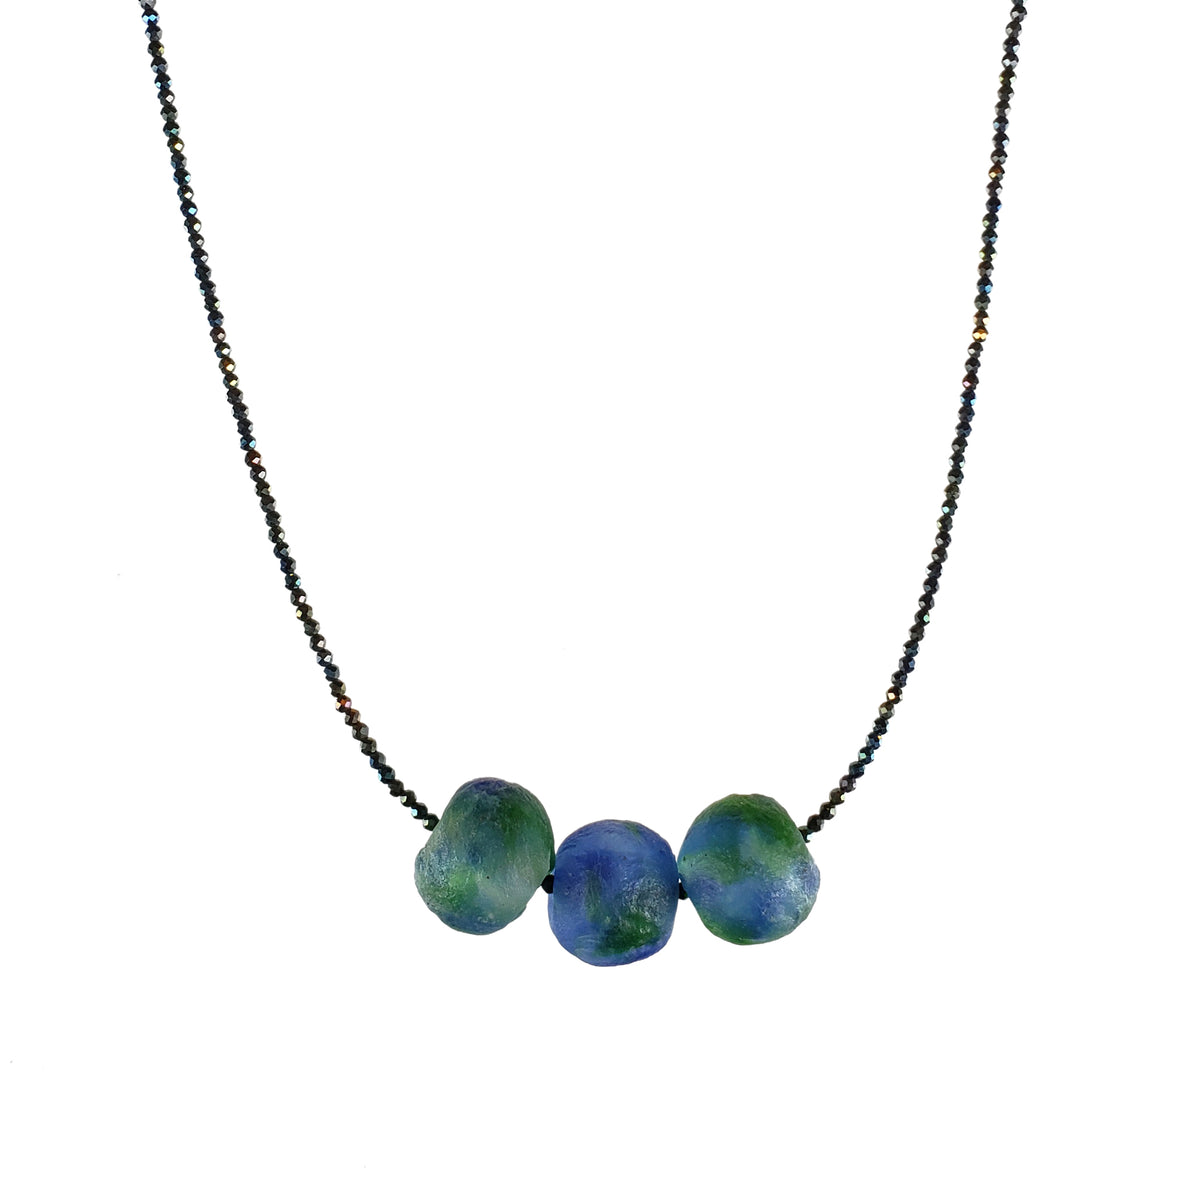 Ghana Blue & Green Glass Necklace